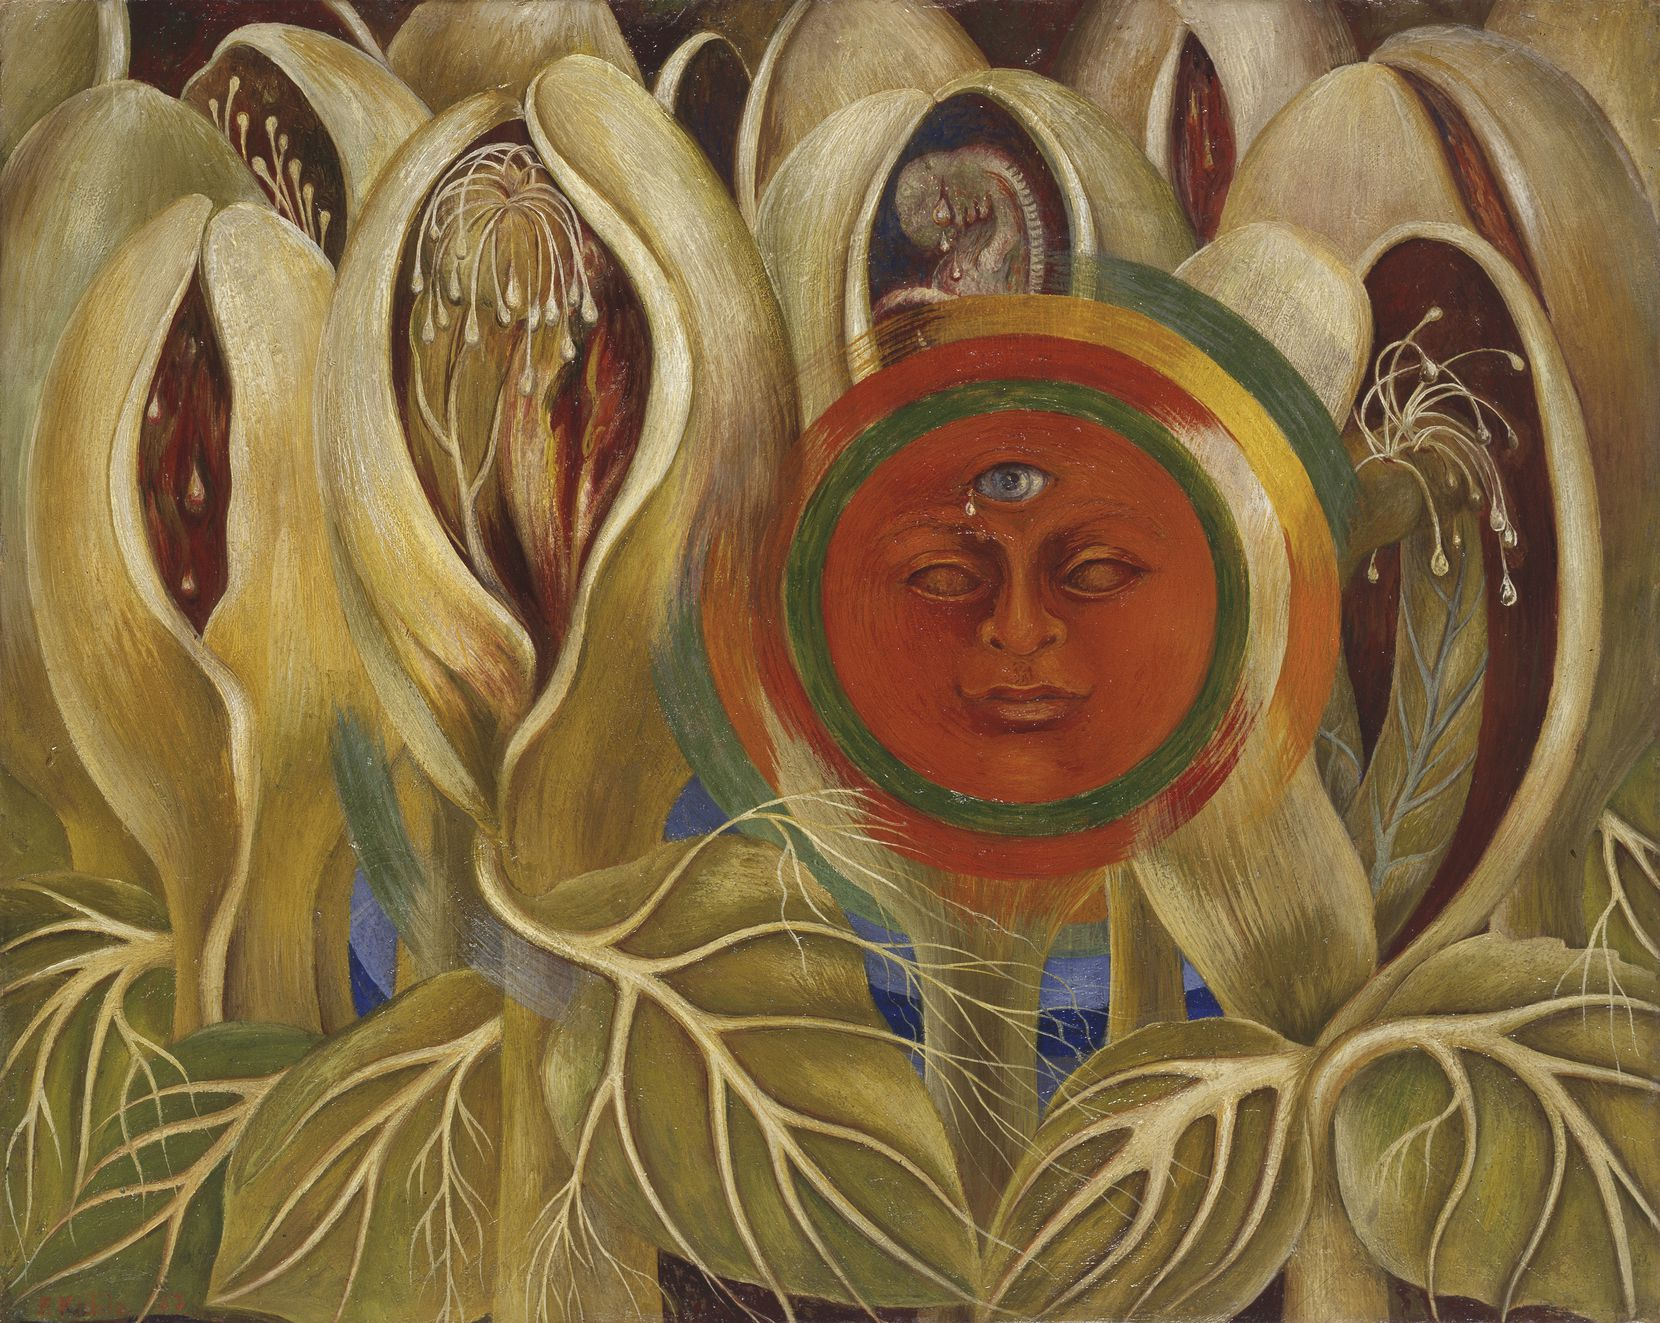 Frida Kahlo, Sun and Life, 1947, óleo sobre masonita, colección privada, cortesía de Galer a Arvil.  2021 Banco de México Diego Rivera Frida Kahlo Museums Trust, México, DF / Artists Rights Society (ARS), Nueva York